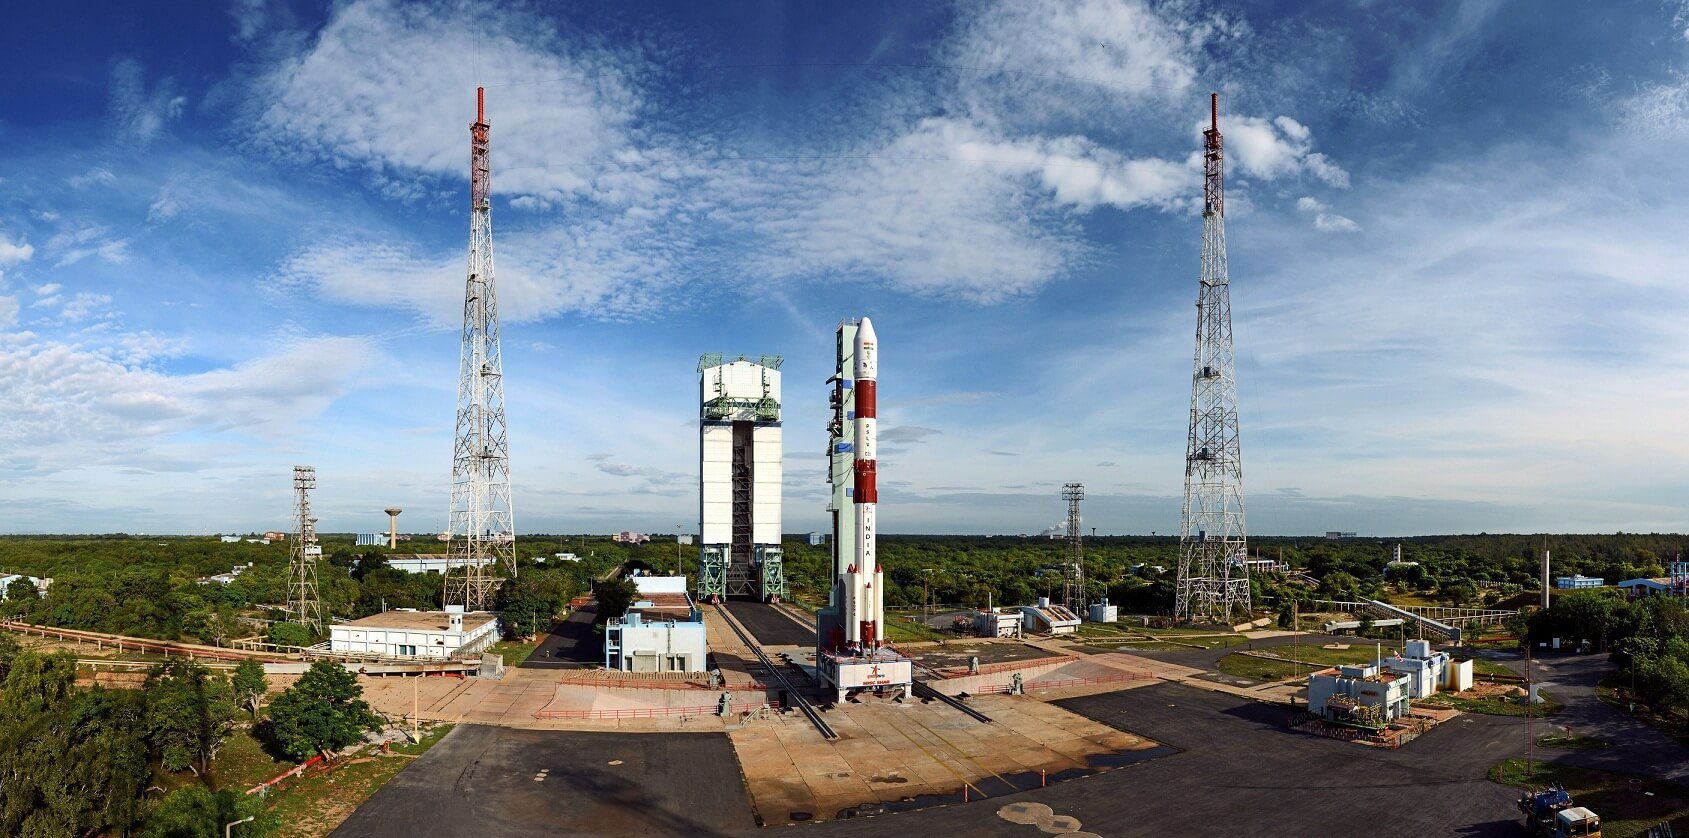 5 Things To Know About PSLV�s Longest Flight That Carried SCATSAT-1 and 7 Other Satellites